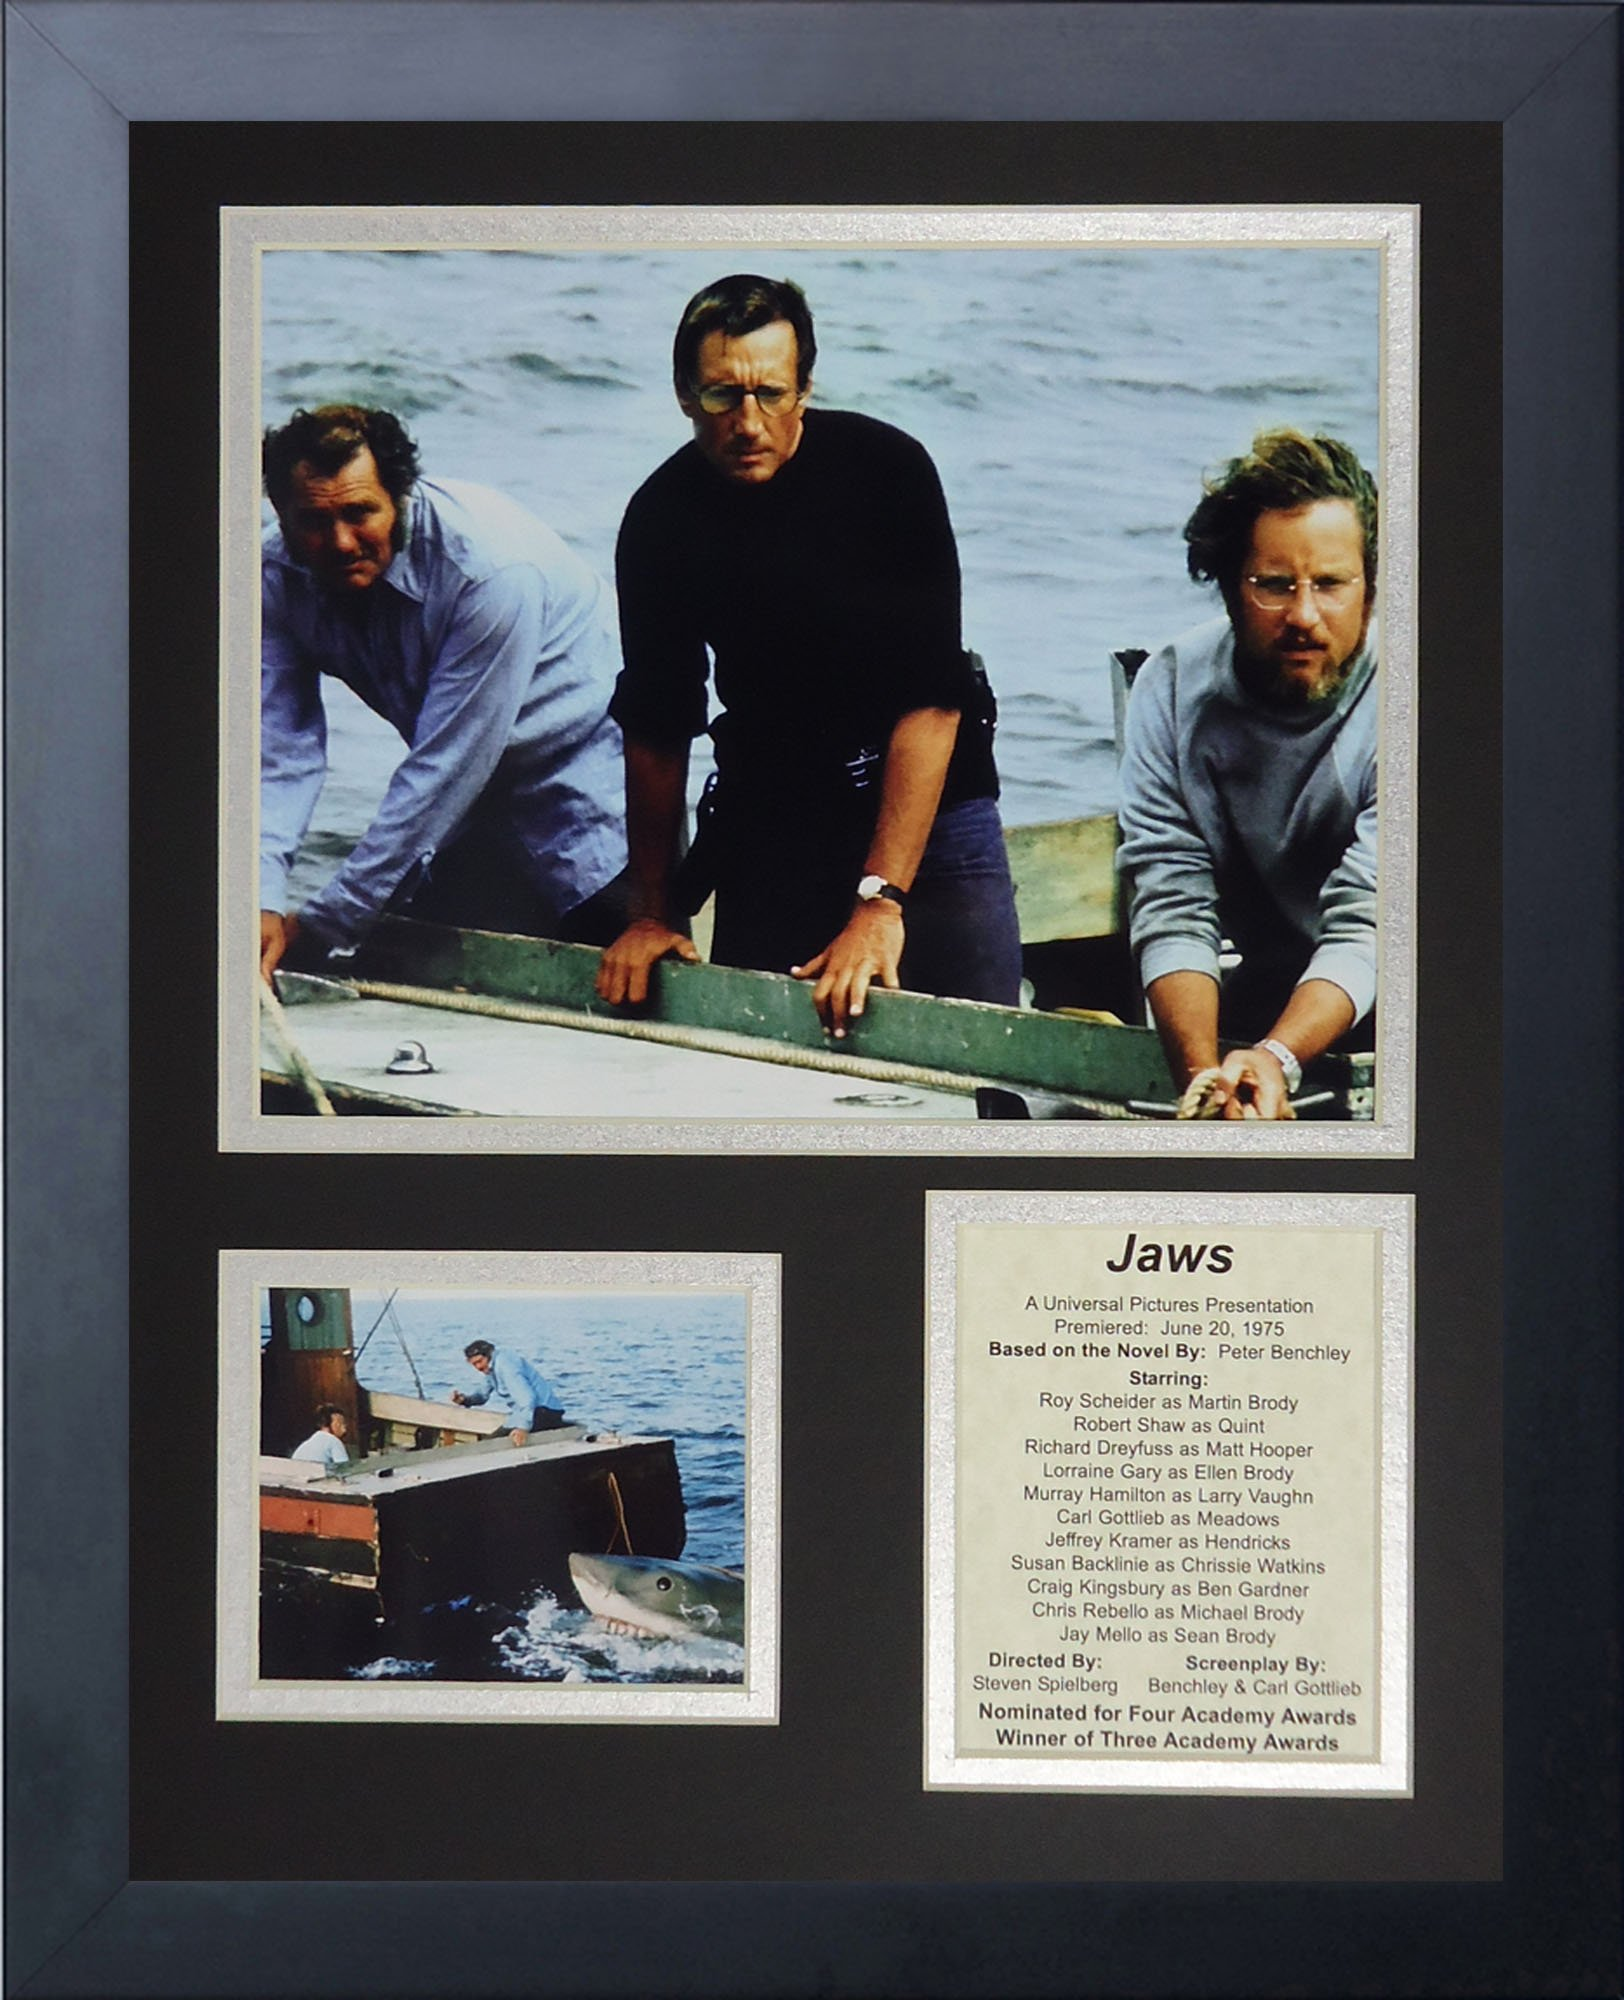 Legends Never Die Jaws Framed Photo Collage, 11